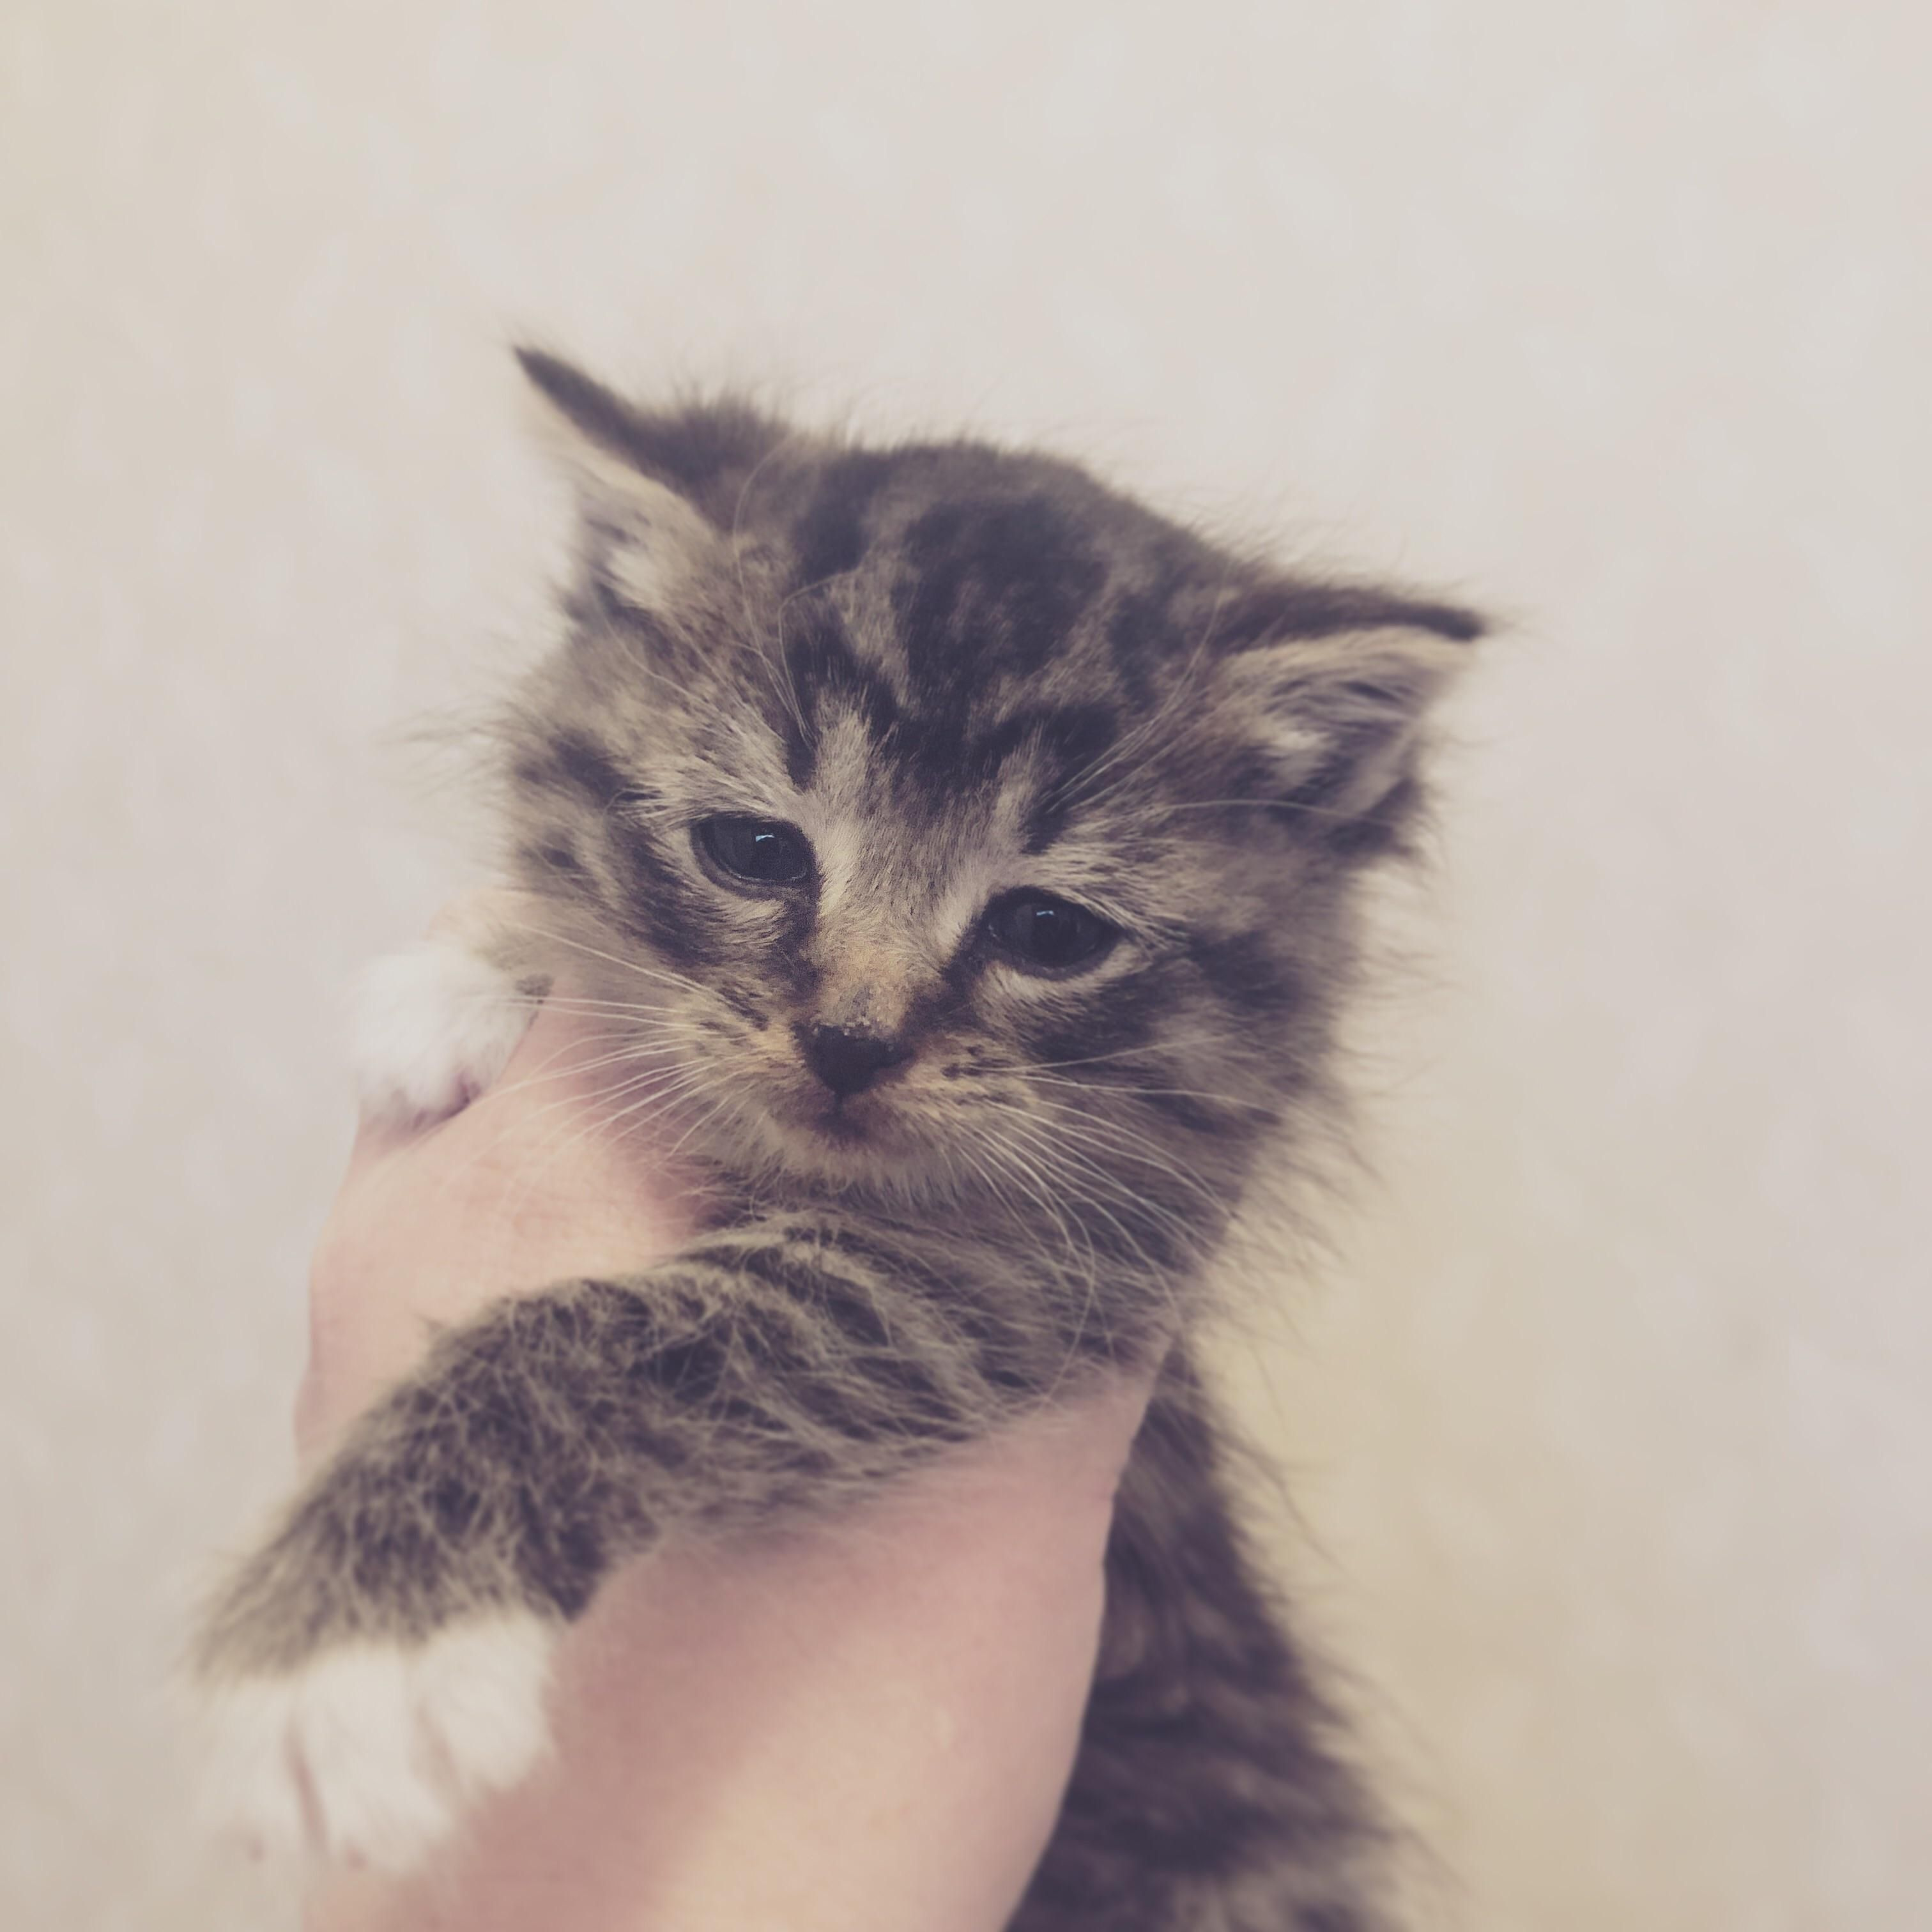 What Breed Is My Kitten Hello There Bright People Are You Catlover Or Have You Any Pretty Cats I Think You Love A Kitty Face Kitten Cat Lovers Cats